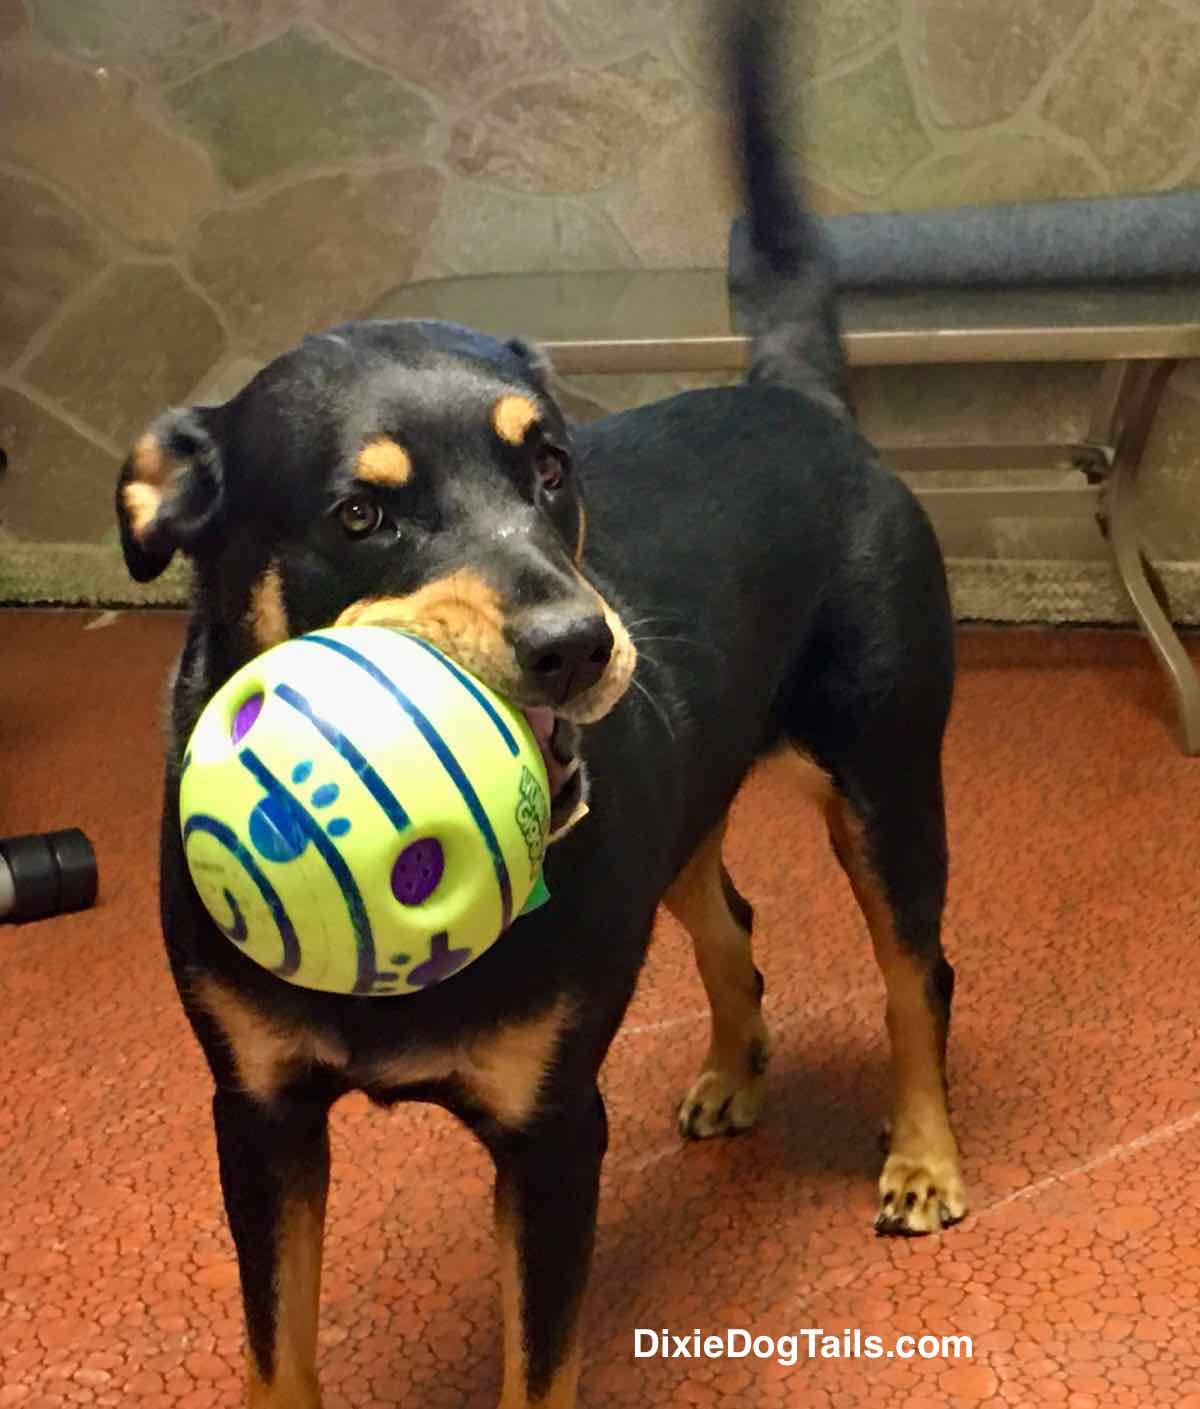 Dog standing with ball in her mouth